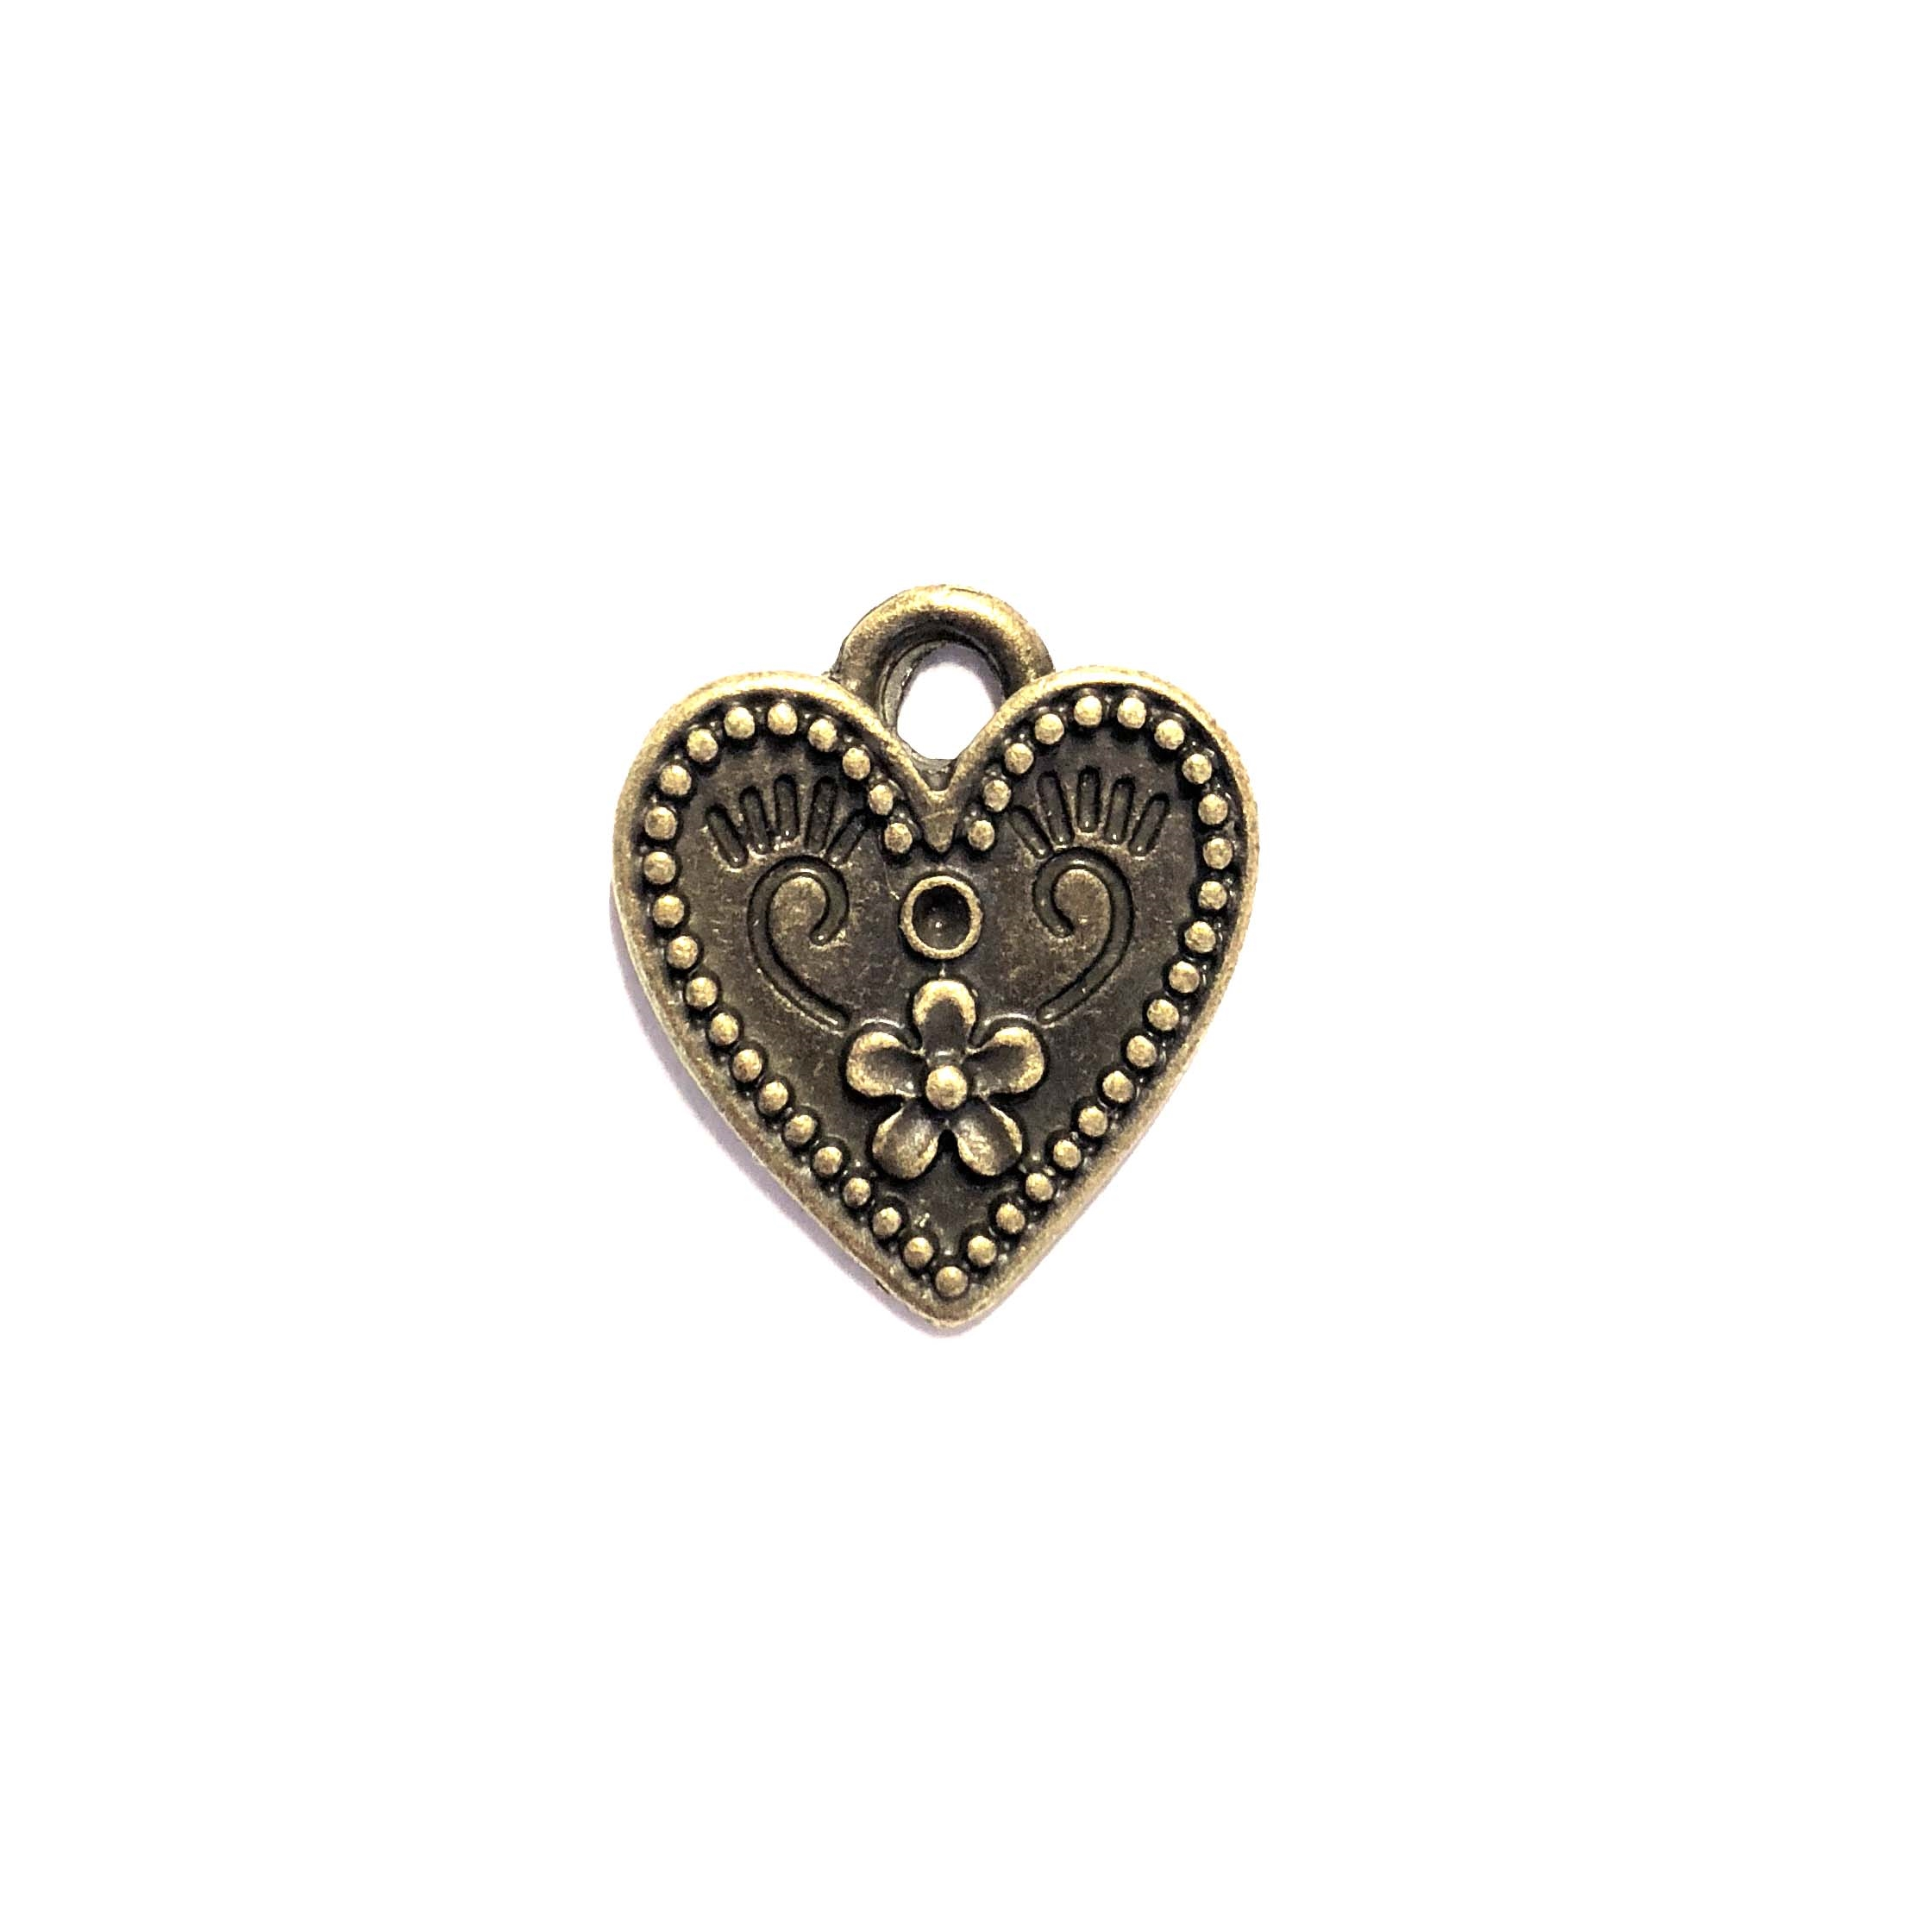 flower heart charm, bronze finish, heart charm, cast zinc, 19mm, lead free,  jewelry findings, B'sue Boutiques, charm, heart, flower, pendent, heart flower, flower heart, 08088